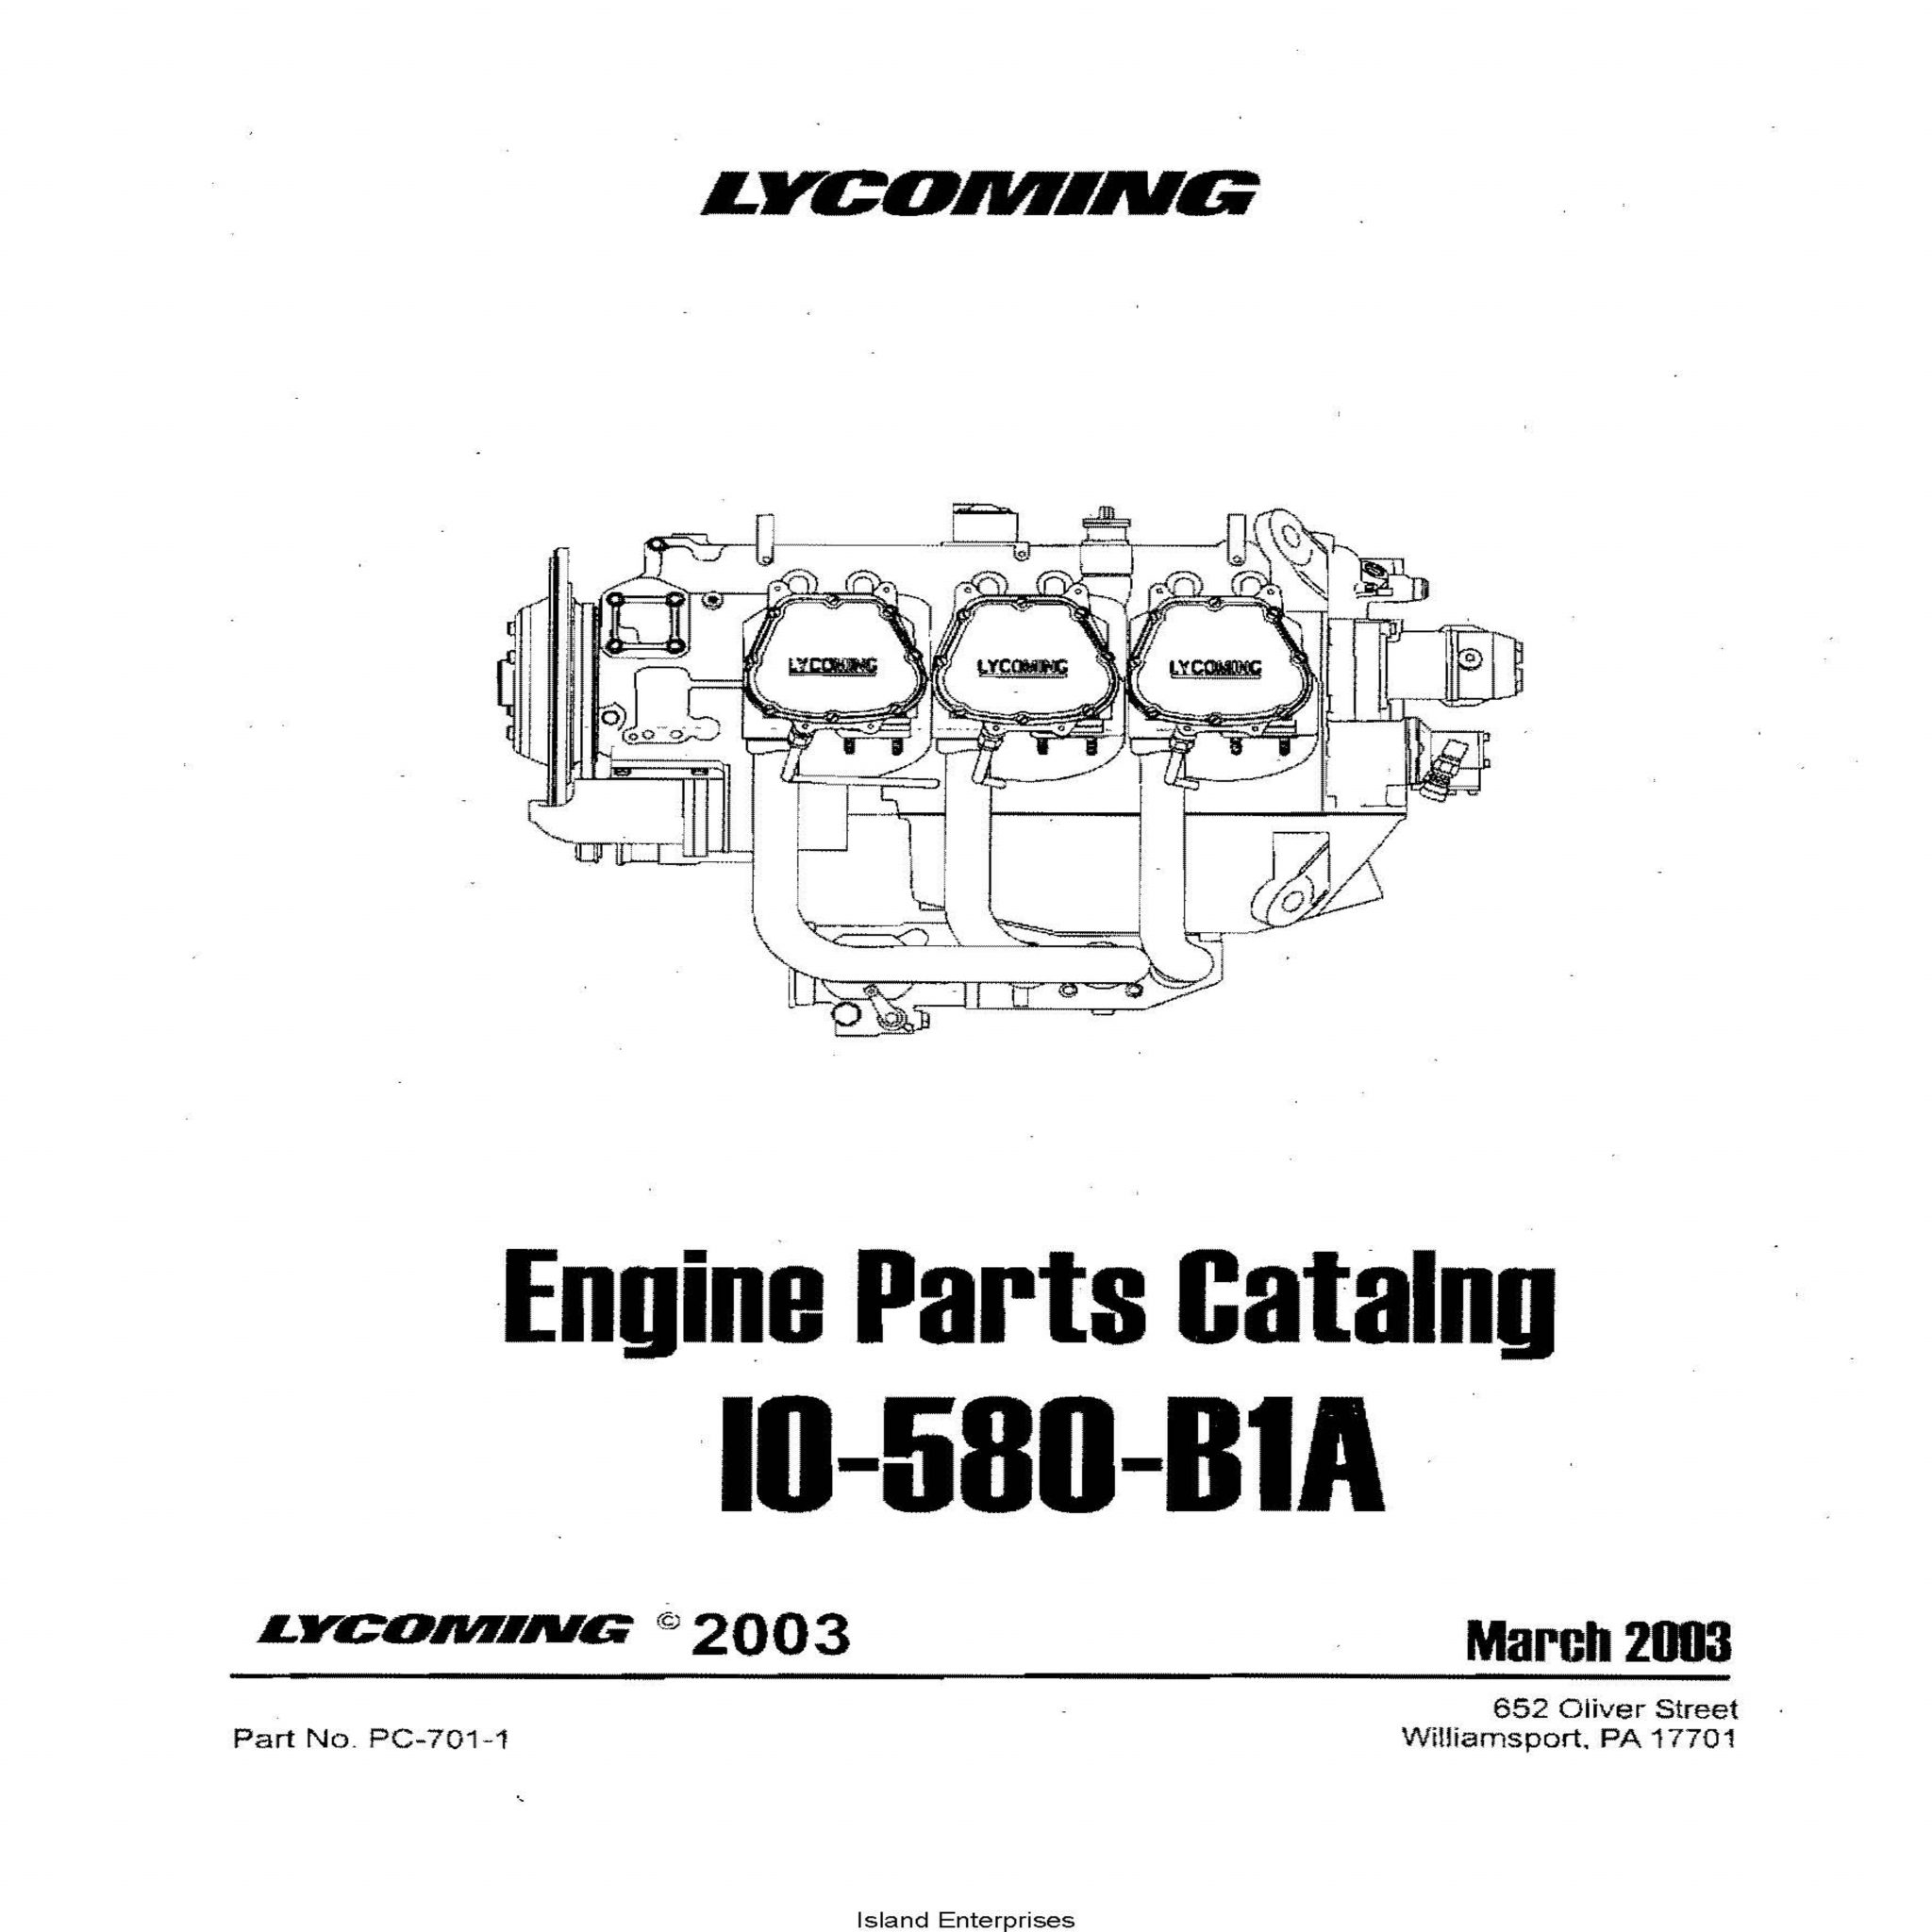 Lycoming Parts Catalog IO-580-B1A Part # PC-701-1